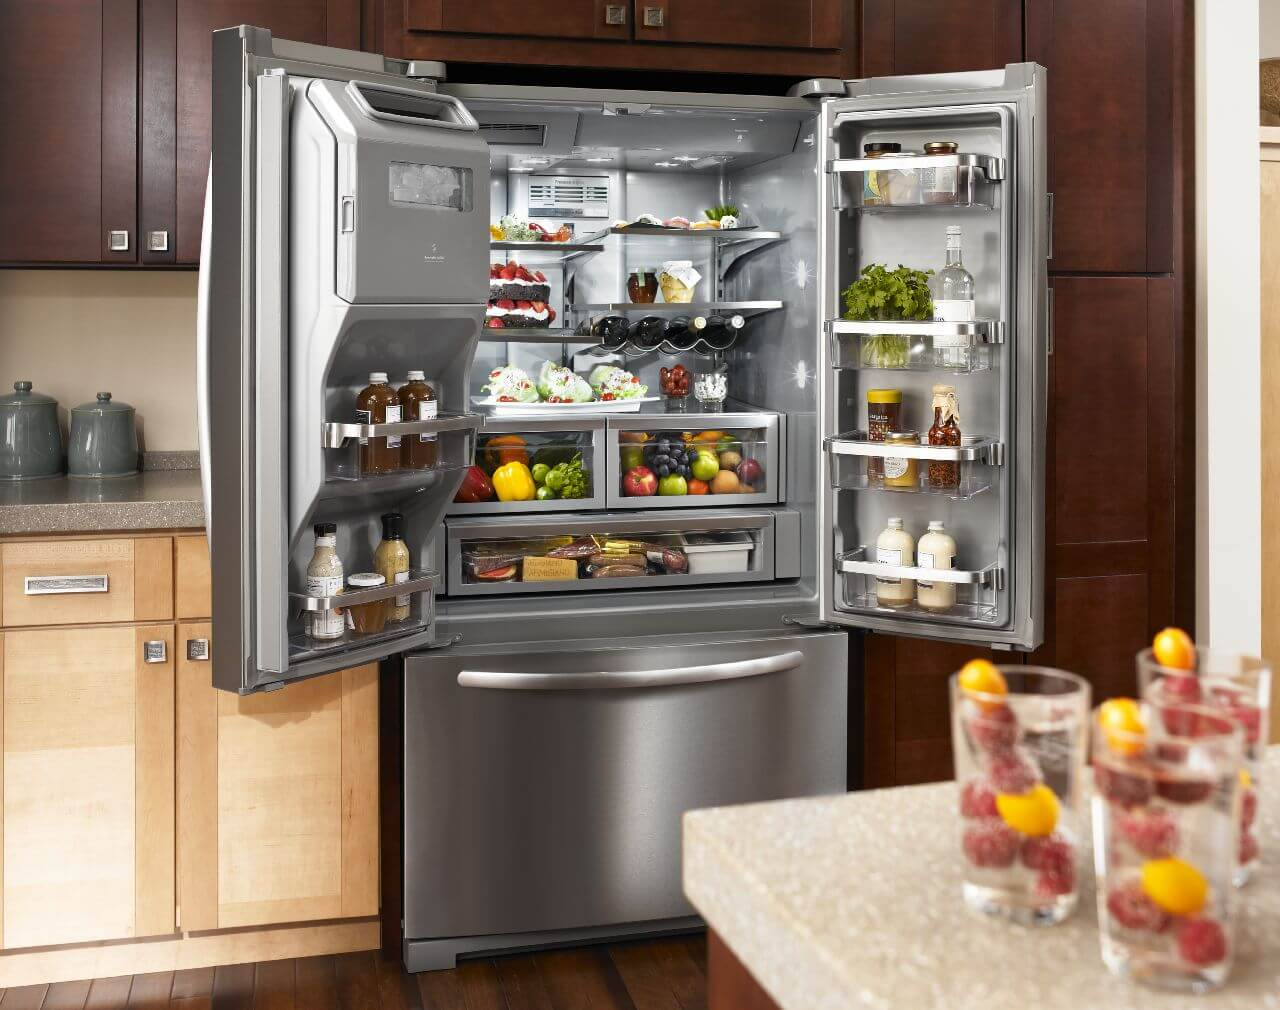 Elegant ... Giveaway Kitchenaid Refrigerator Worth Over 3 000 100 Days Of Real Food  ...